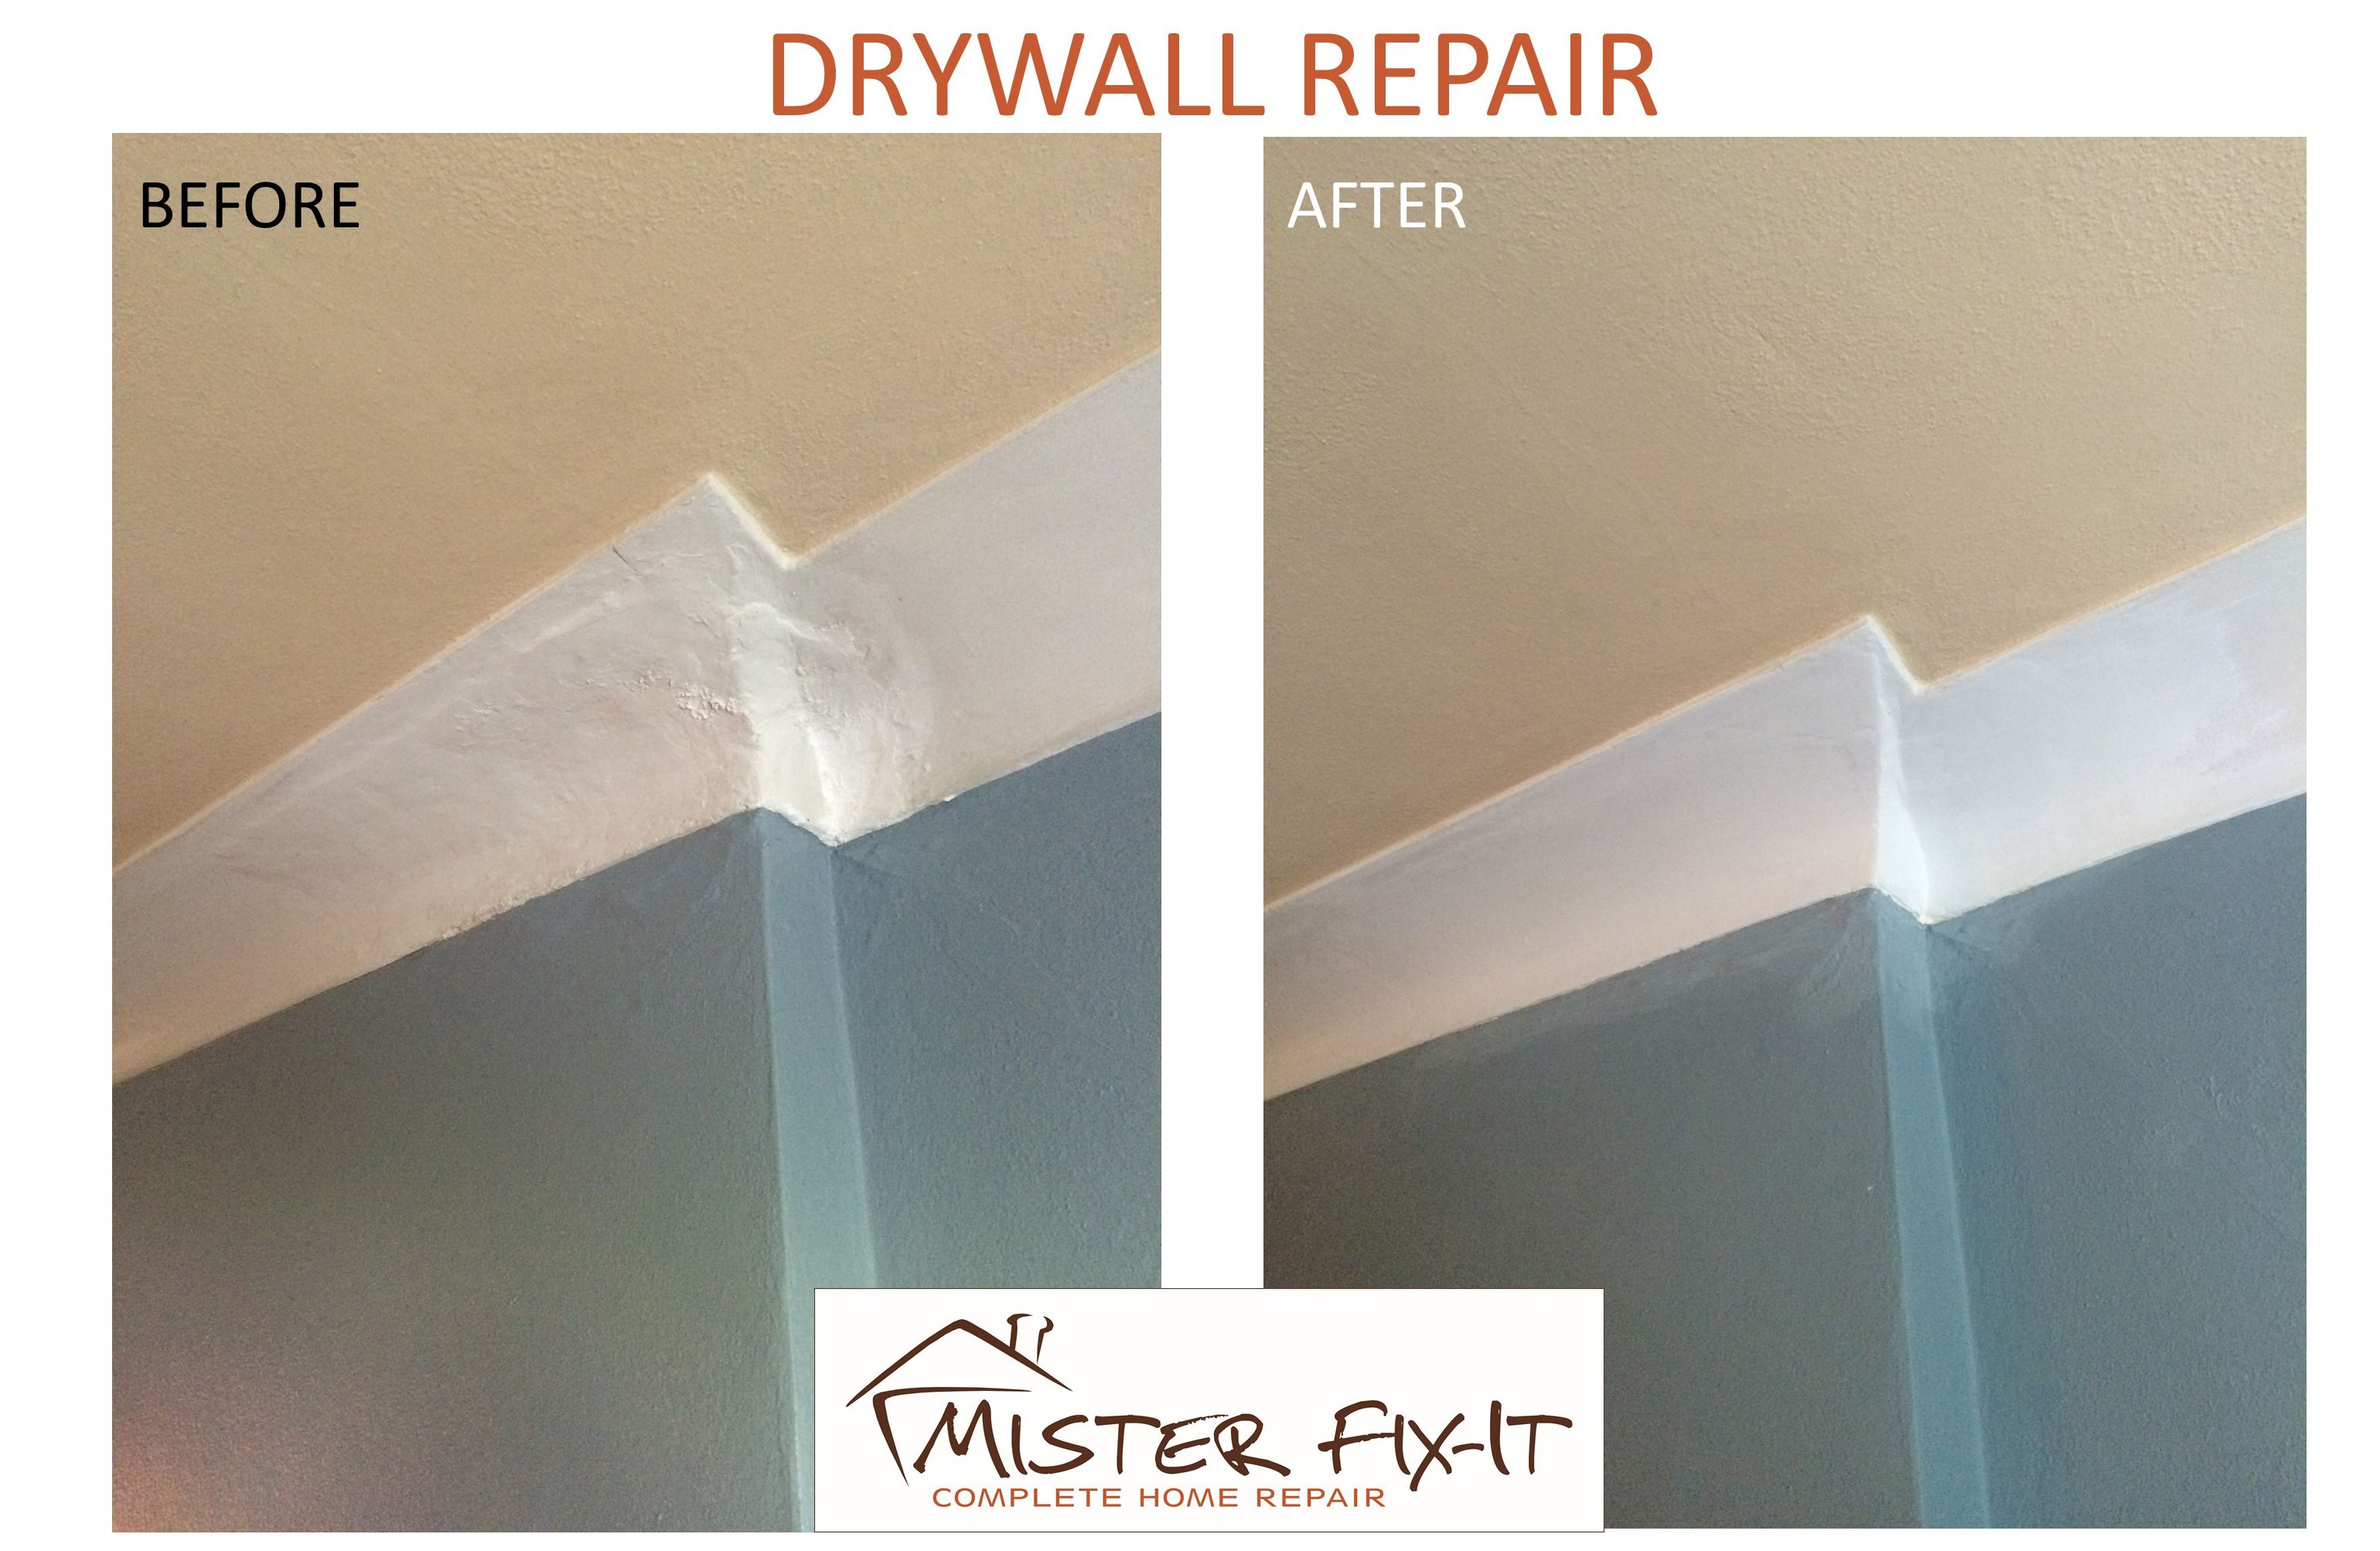 How To Repair Drywall 101 1 Prepare The Surface 2 Take A Step Back And Look At Prepared Surface 3 Put Down The Sandpaper Drywall Repair Home Repair Repair